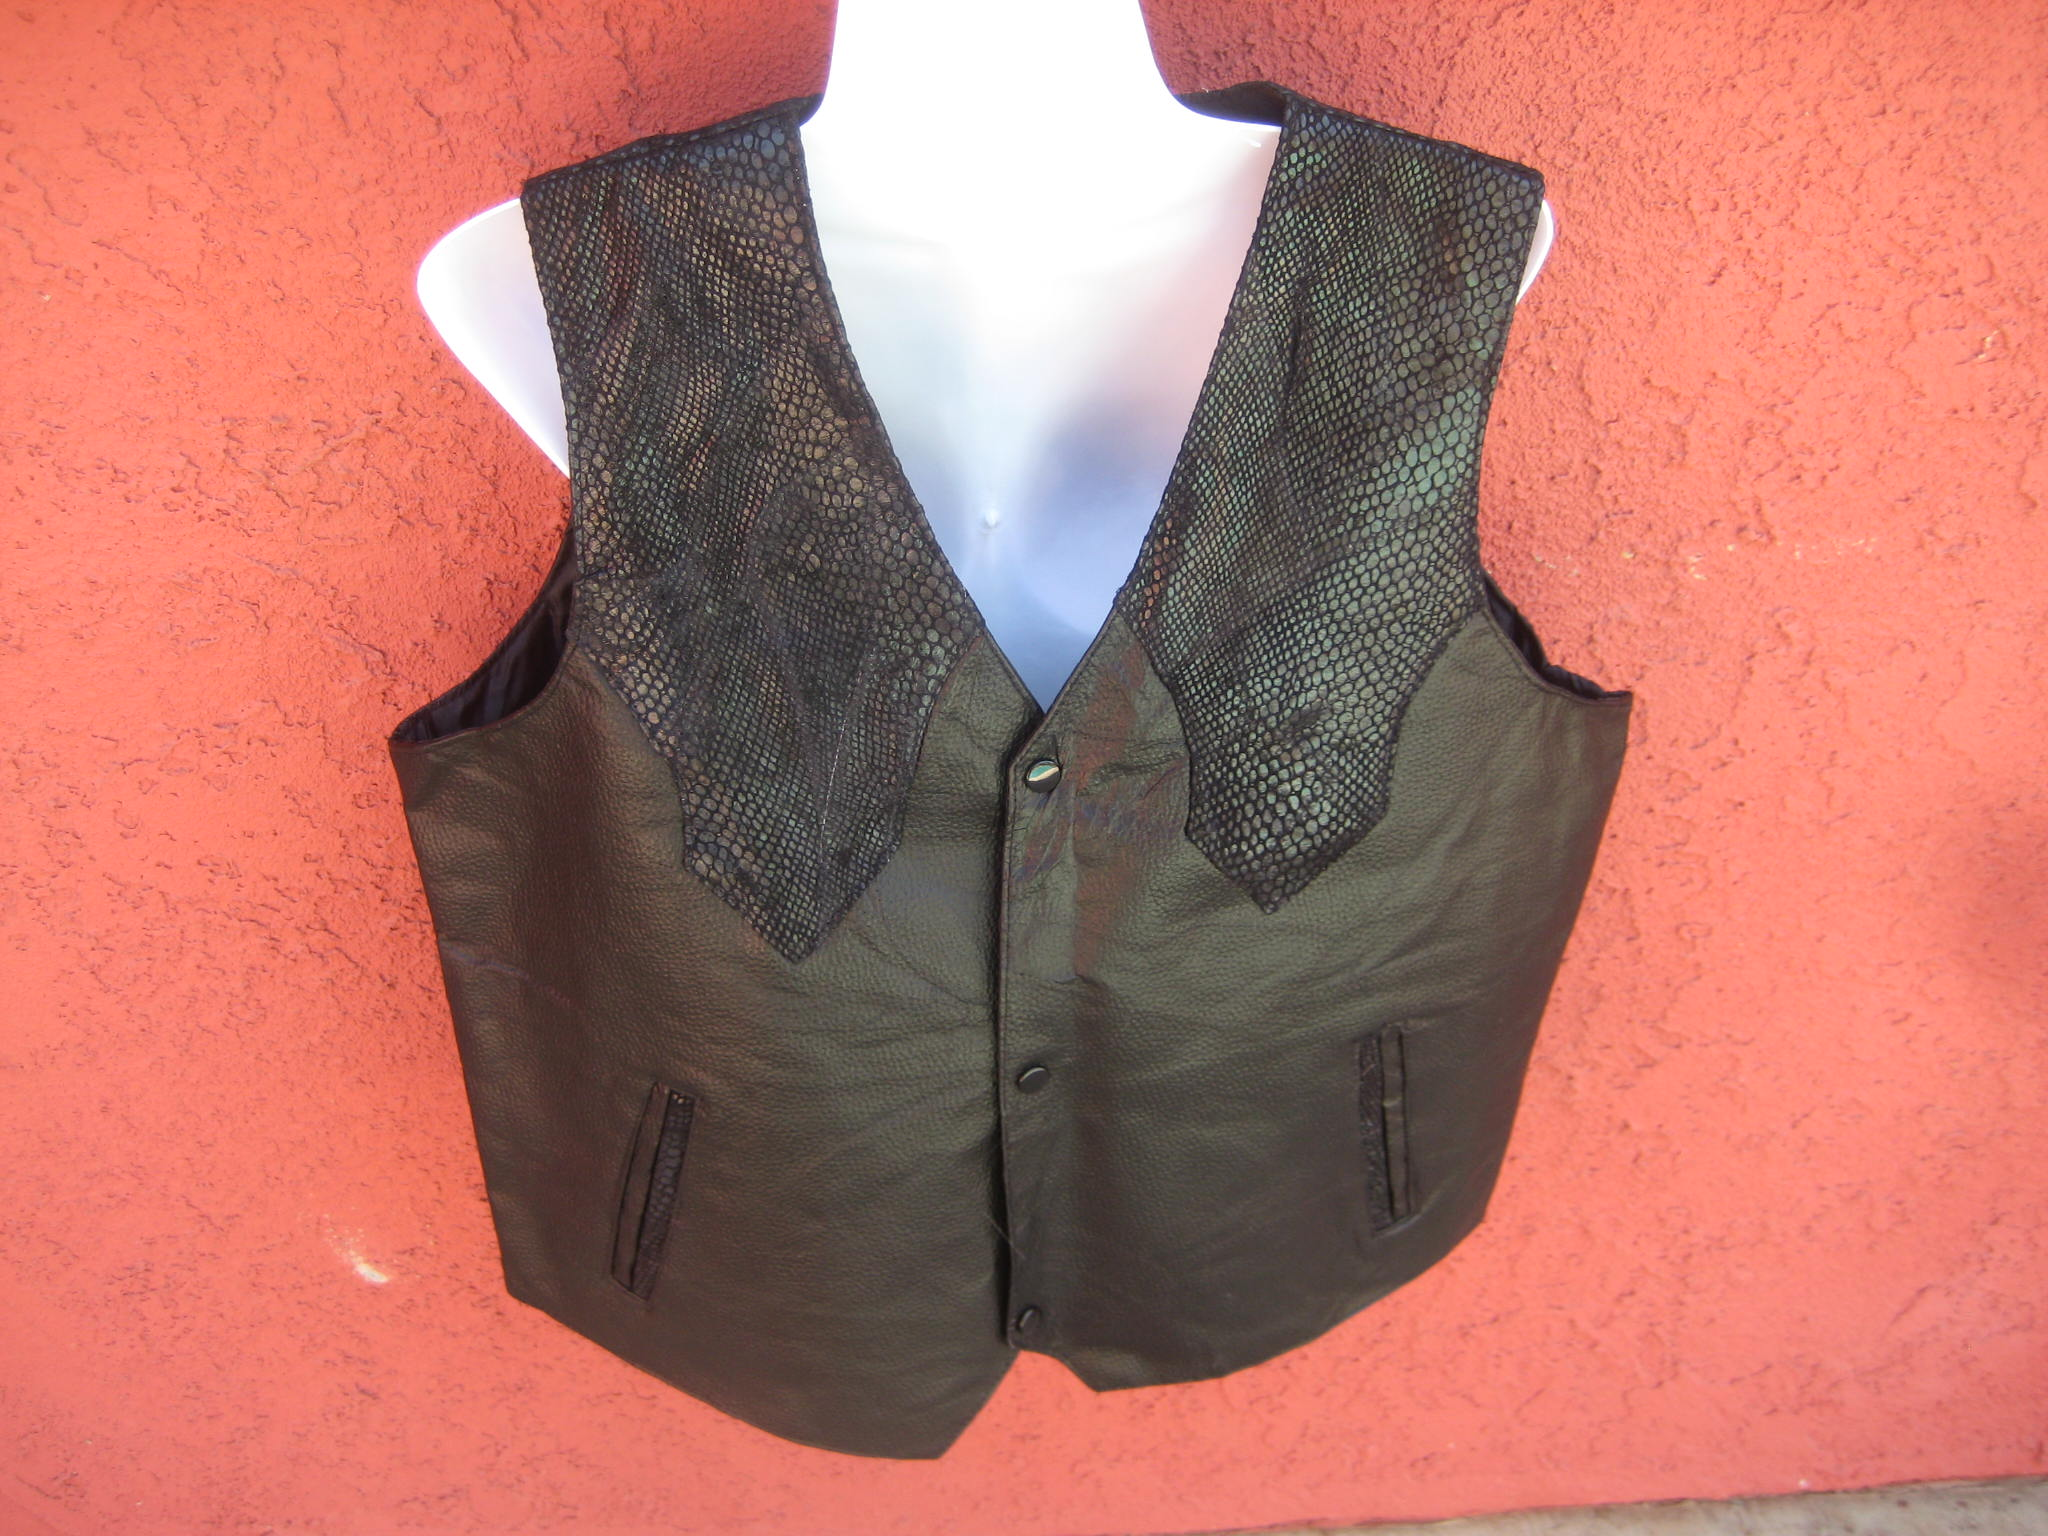 COWBOY STYLE VEST Hand-sewn Yellow Leather Ostrich and Black Snake Skin Pocket Vest